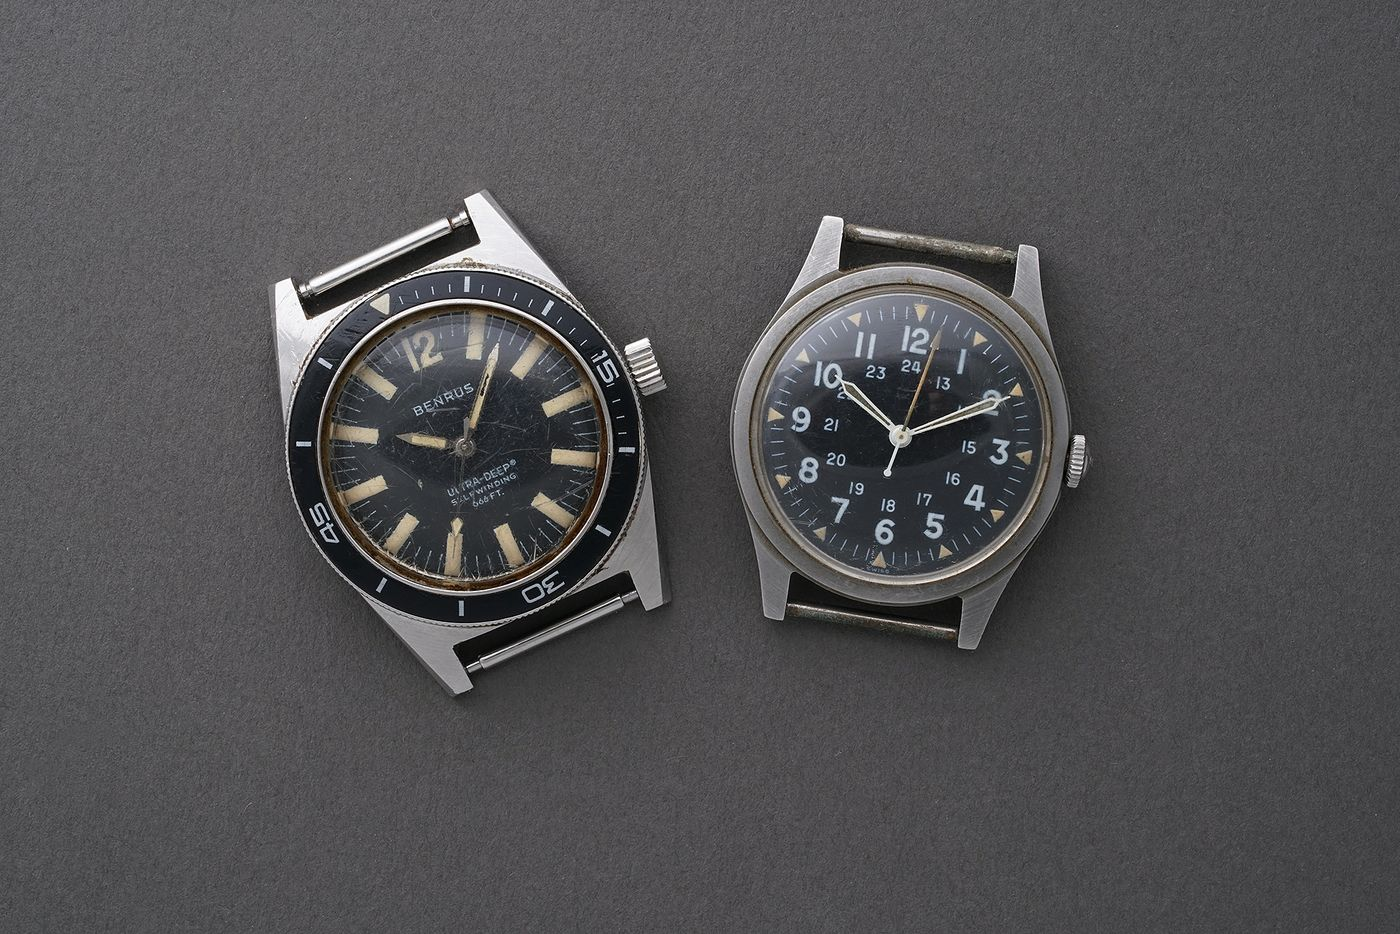 Our New-York based Specialist Isabella Proia tells the story of two stainless steel military wristwatches, consigned by the daughter of United States Air Force Senior Master Sergeant James J. Stanford, that confirm Benrus watches were made for and worn by active CIA agents during the 1960s.